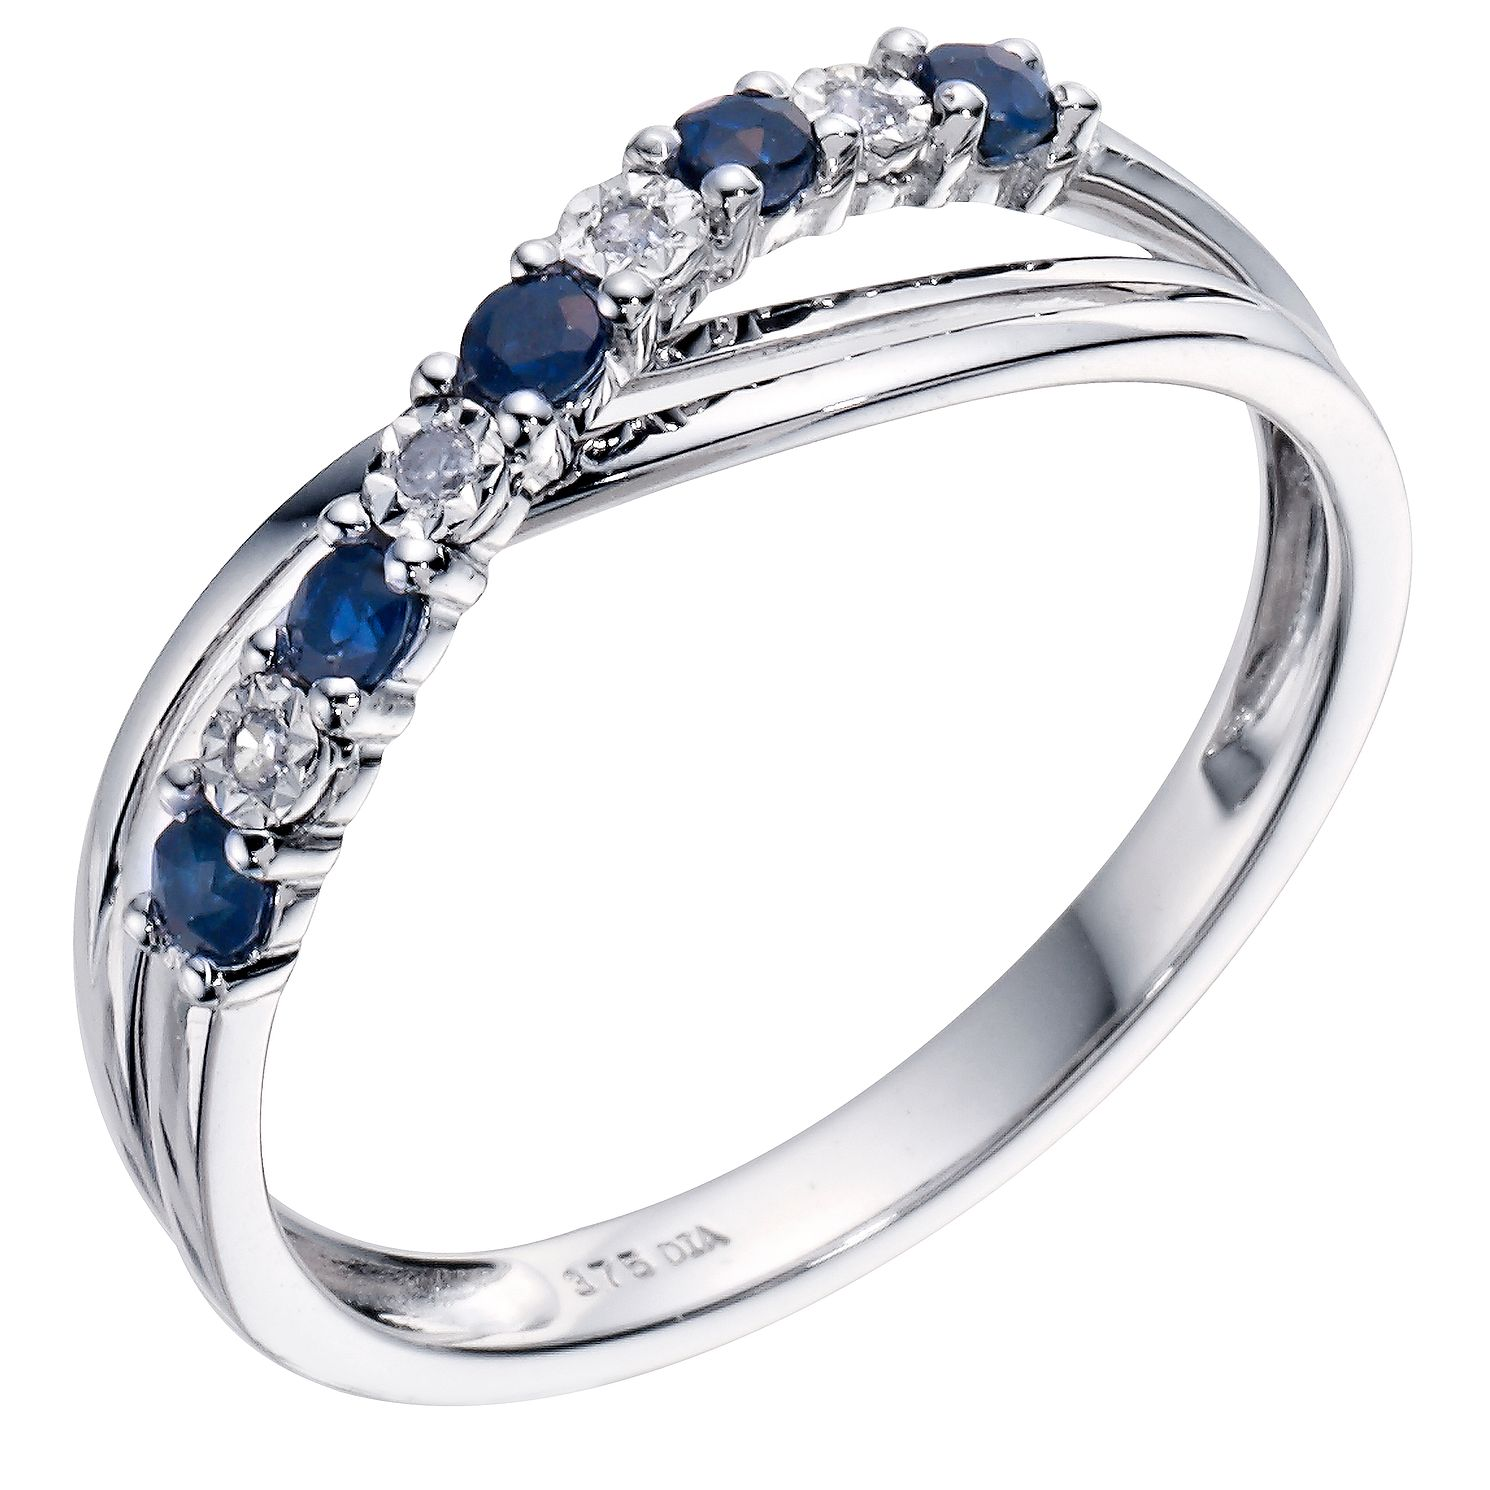 ring halo london bespoke the david product finest rub engagement saffire in sapphire set jewellery img handmade with diamond rings ashton over contemporary